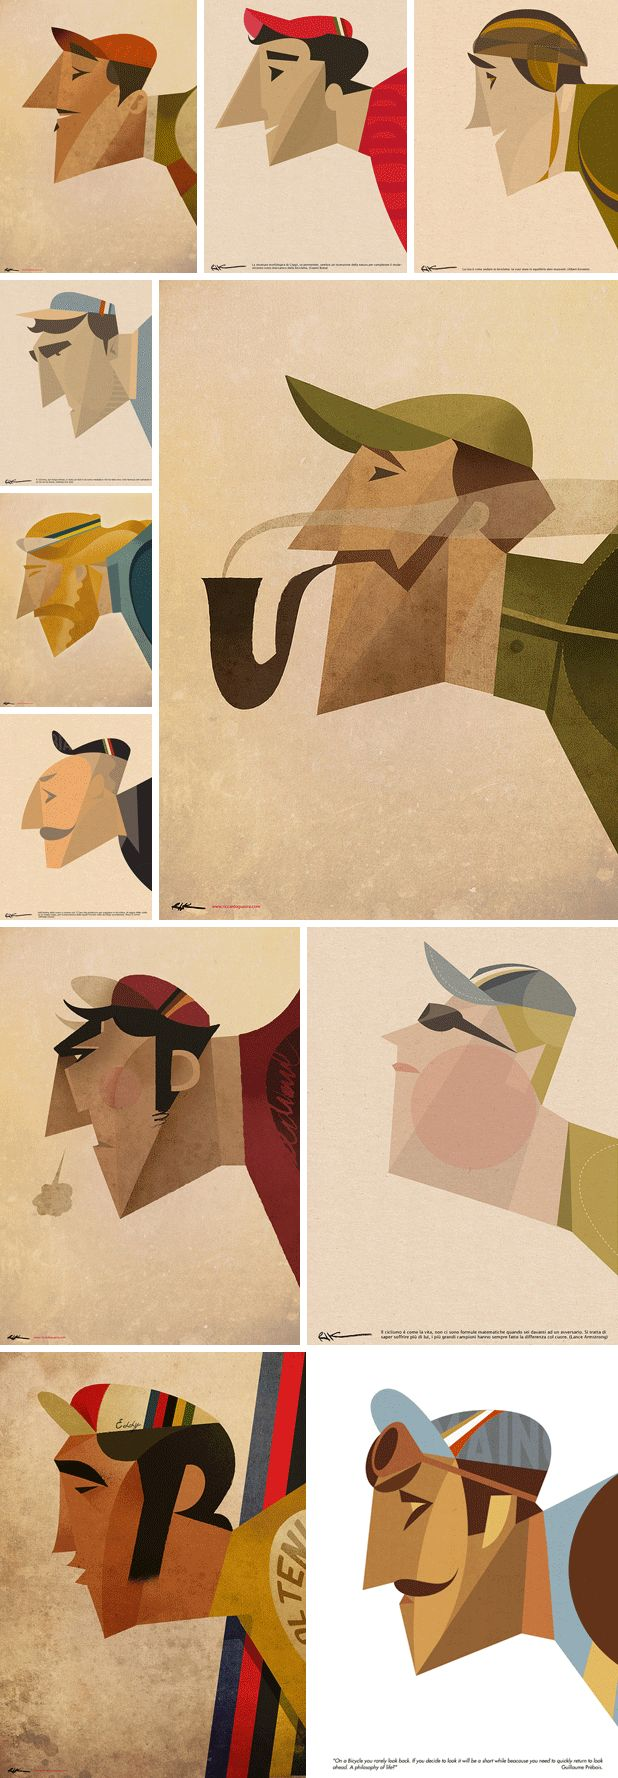 Dream team cyclist illustrations by Riccardo Guasco #illustration